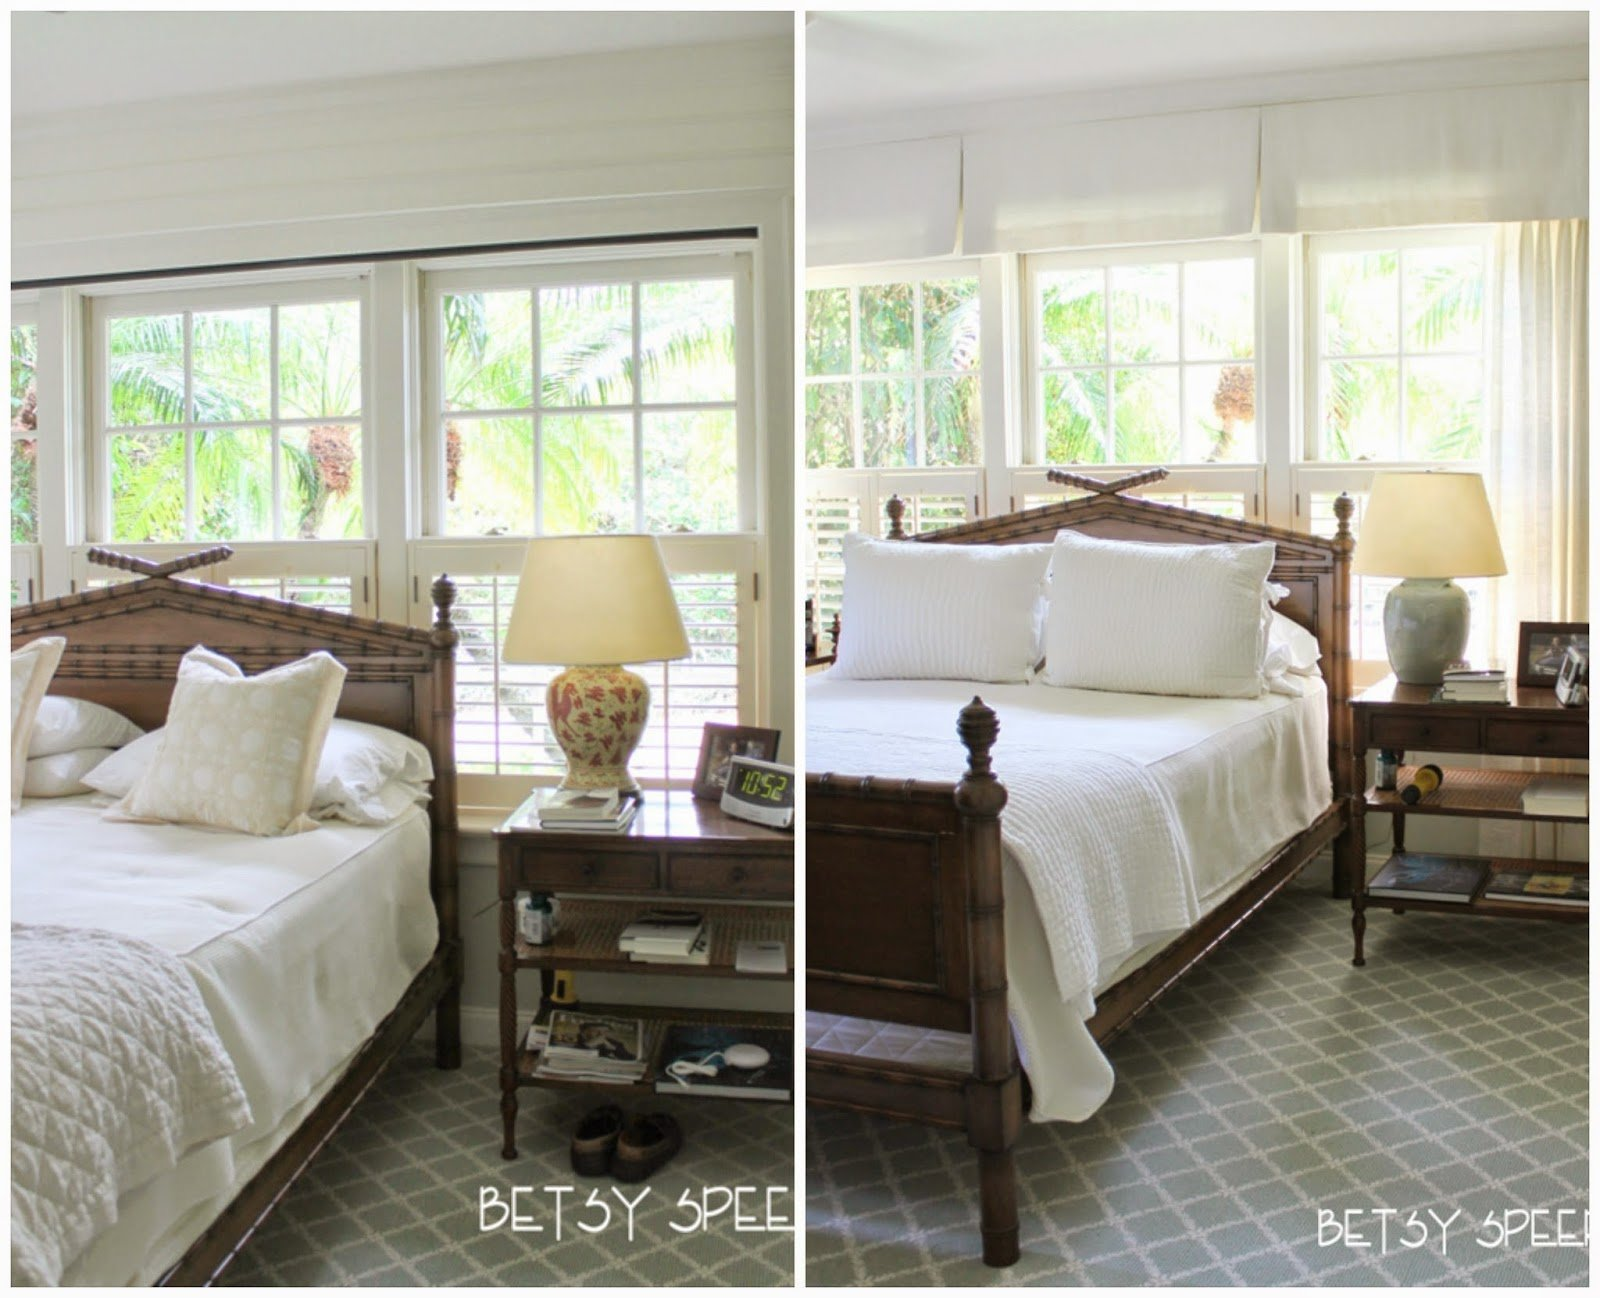 Best Betsy Speert S Blog The Joy Of Separate Bedrooms With Pictures